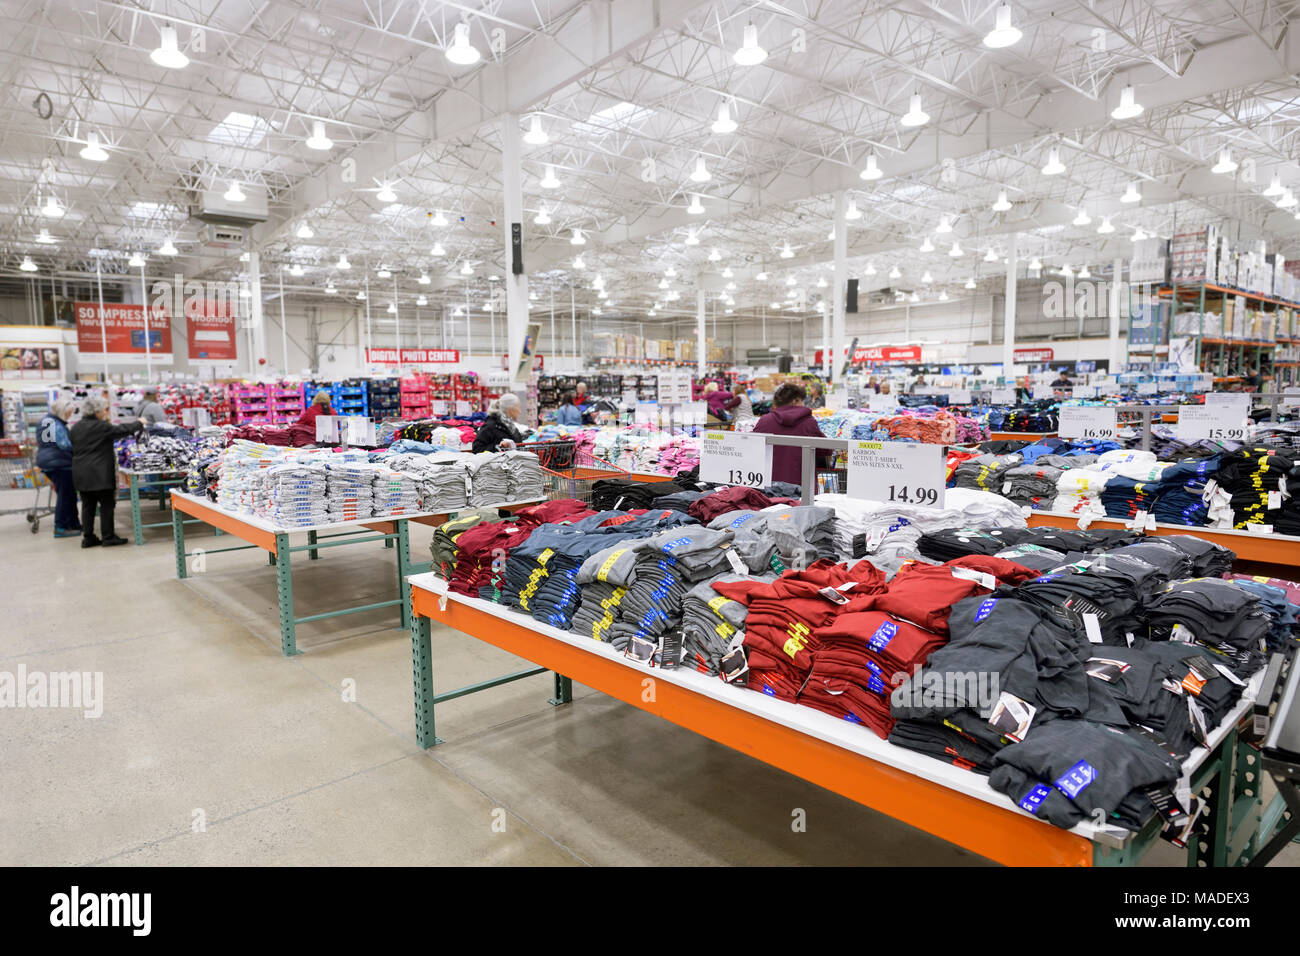 Costco Wholesale Corporation is a warehouse club offering a wide selection of brand name merchandise at discounted prices both through its website and through no-frills membership-only warehouse outlets.